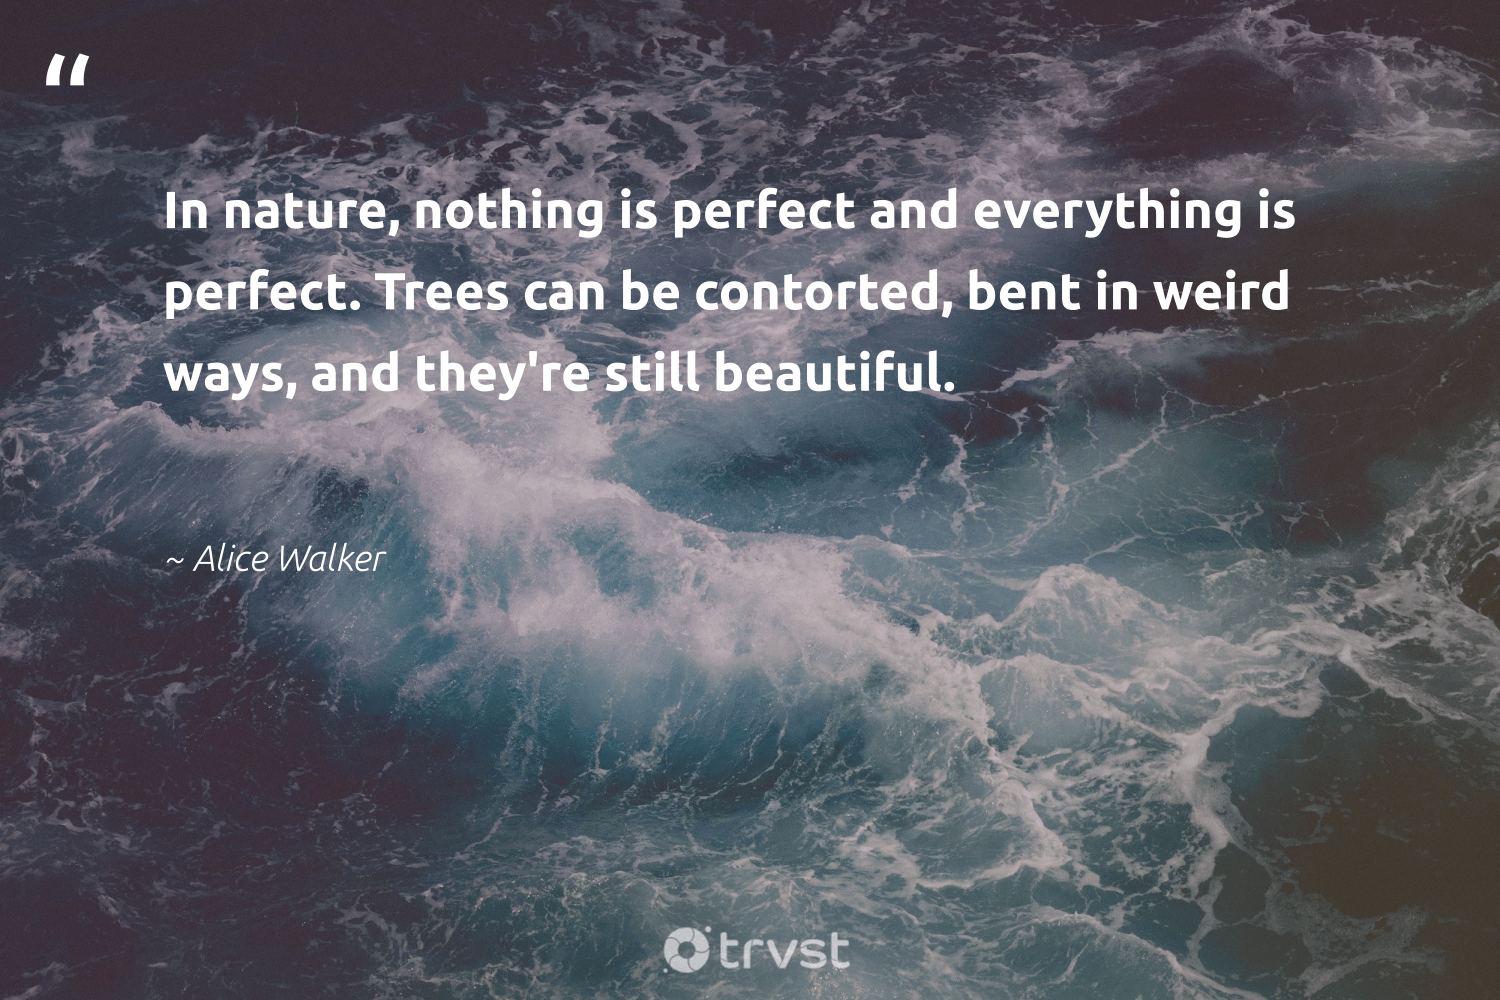 """""""In nature, nothing is perfect and everything is perfect. Trees can be contorted, bent in weird ways, and they're still beautiful.""""  - Alice Walker #trvst #quotes #environment #nature #trees #earth #gogreen #climatechange #dogood #conservation #volunteer #giveback"""